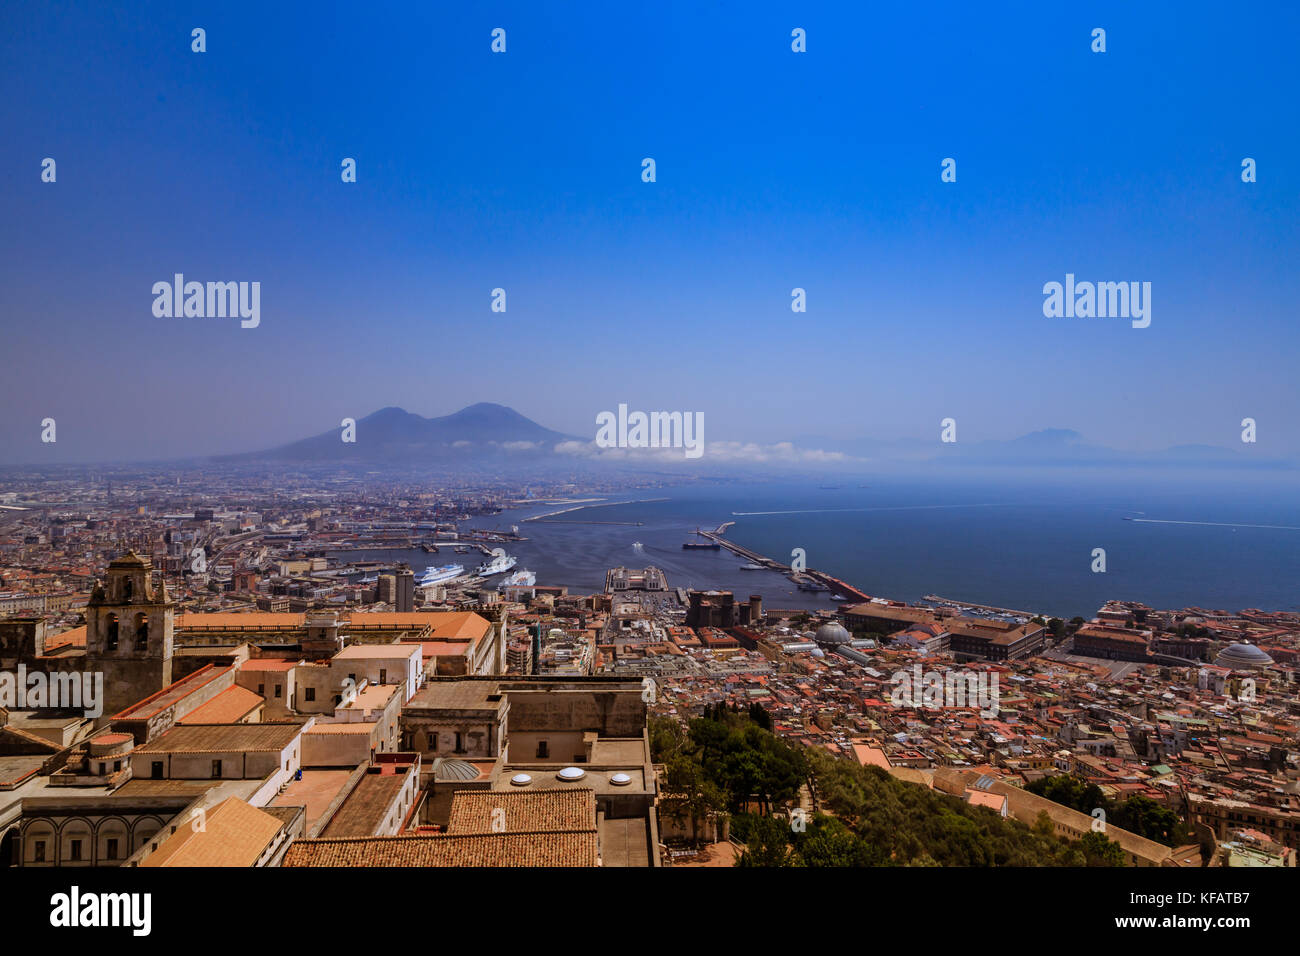 View of the City and Mount Vesuvius from Castel Sant'Elmo, Naples, Italy - Stock Image